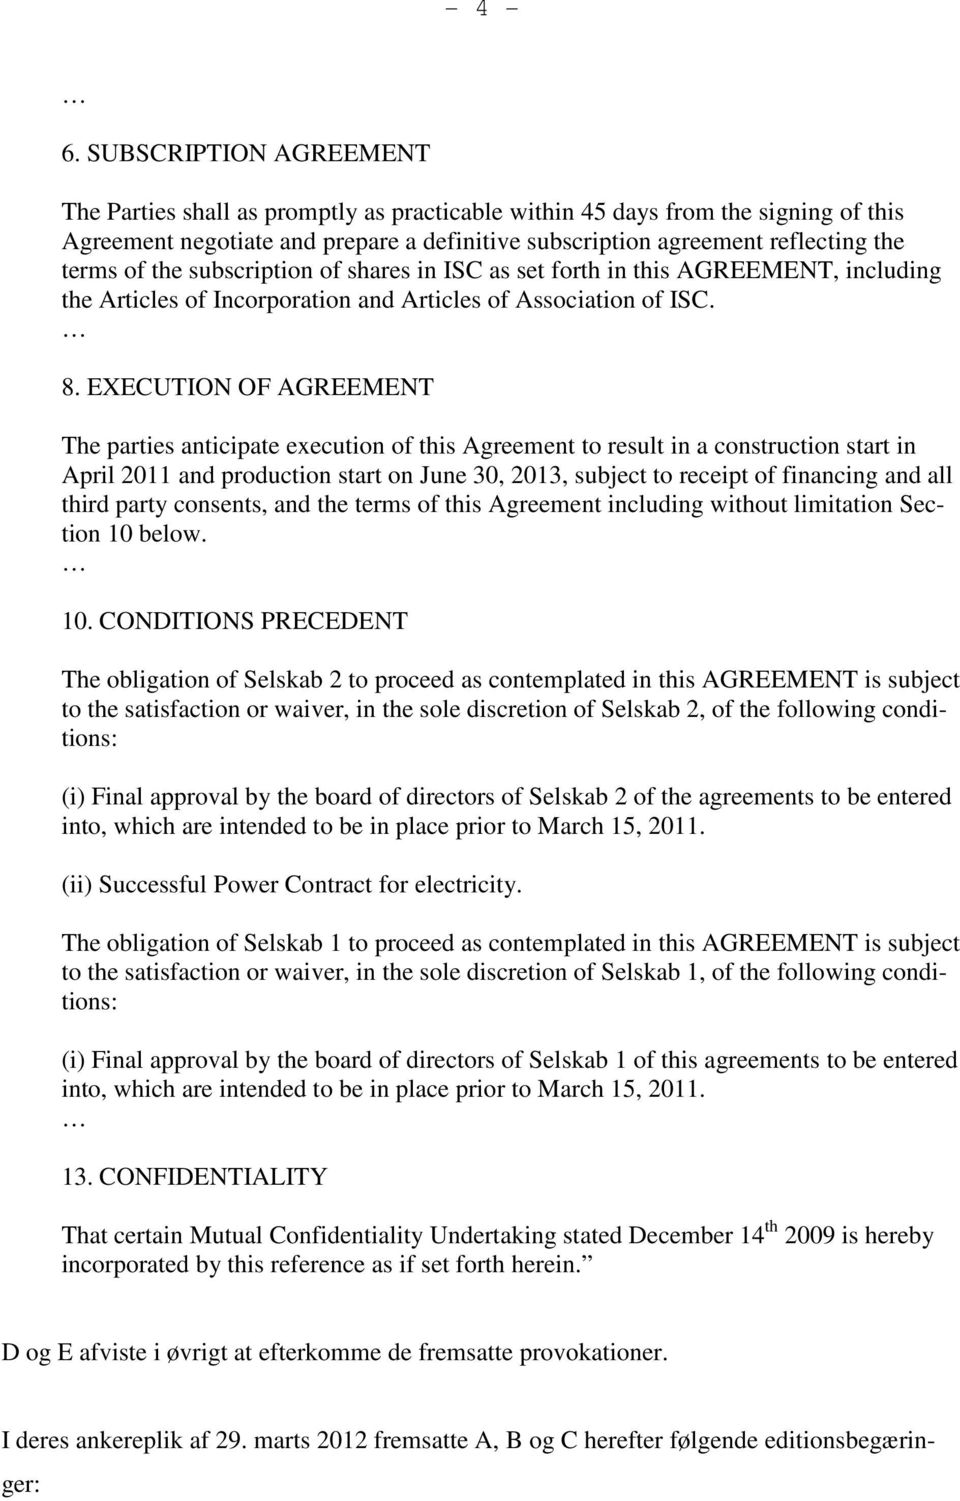 the subscription of shares in ISC as set forth in this AGREEMENT, including the Articles of Incorporation and Articles of Association of ISC. 8.